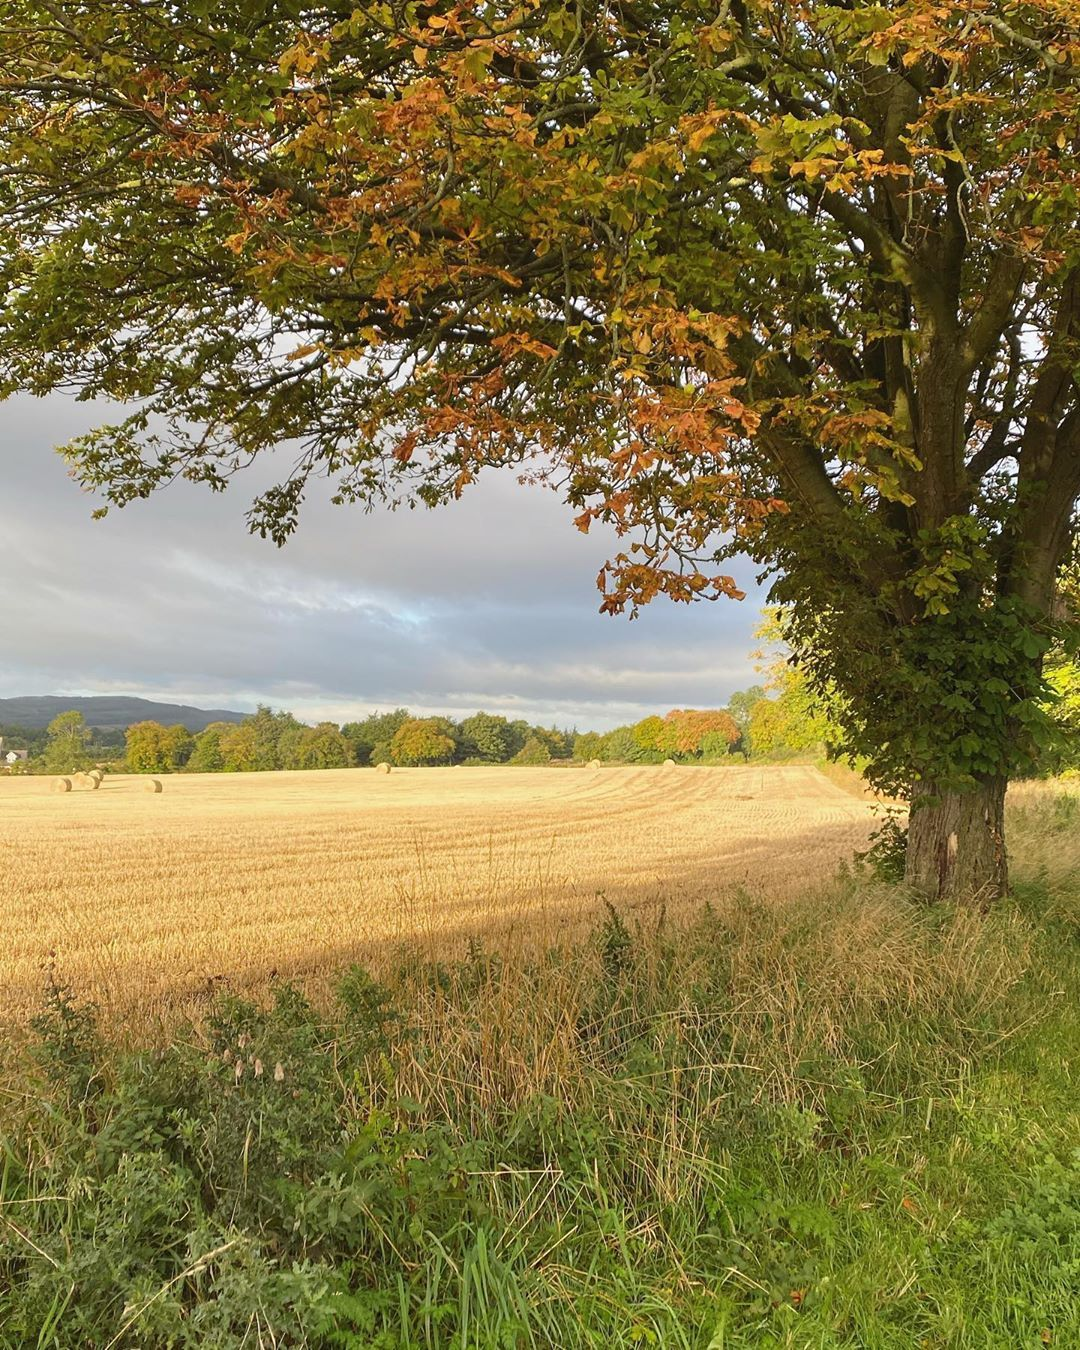 "Rebecca on Instagram: ""Autumn has arrived in Scotland. #autumn #quietshadesofbrown #kinross #aseasonalshift #perthshire #countryliving #countrylife #scotland…"""